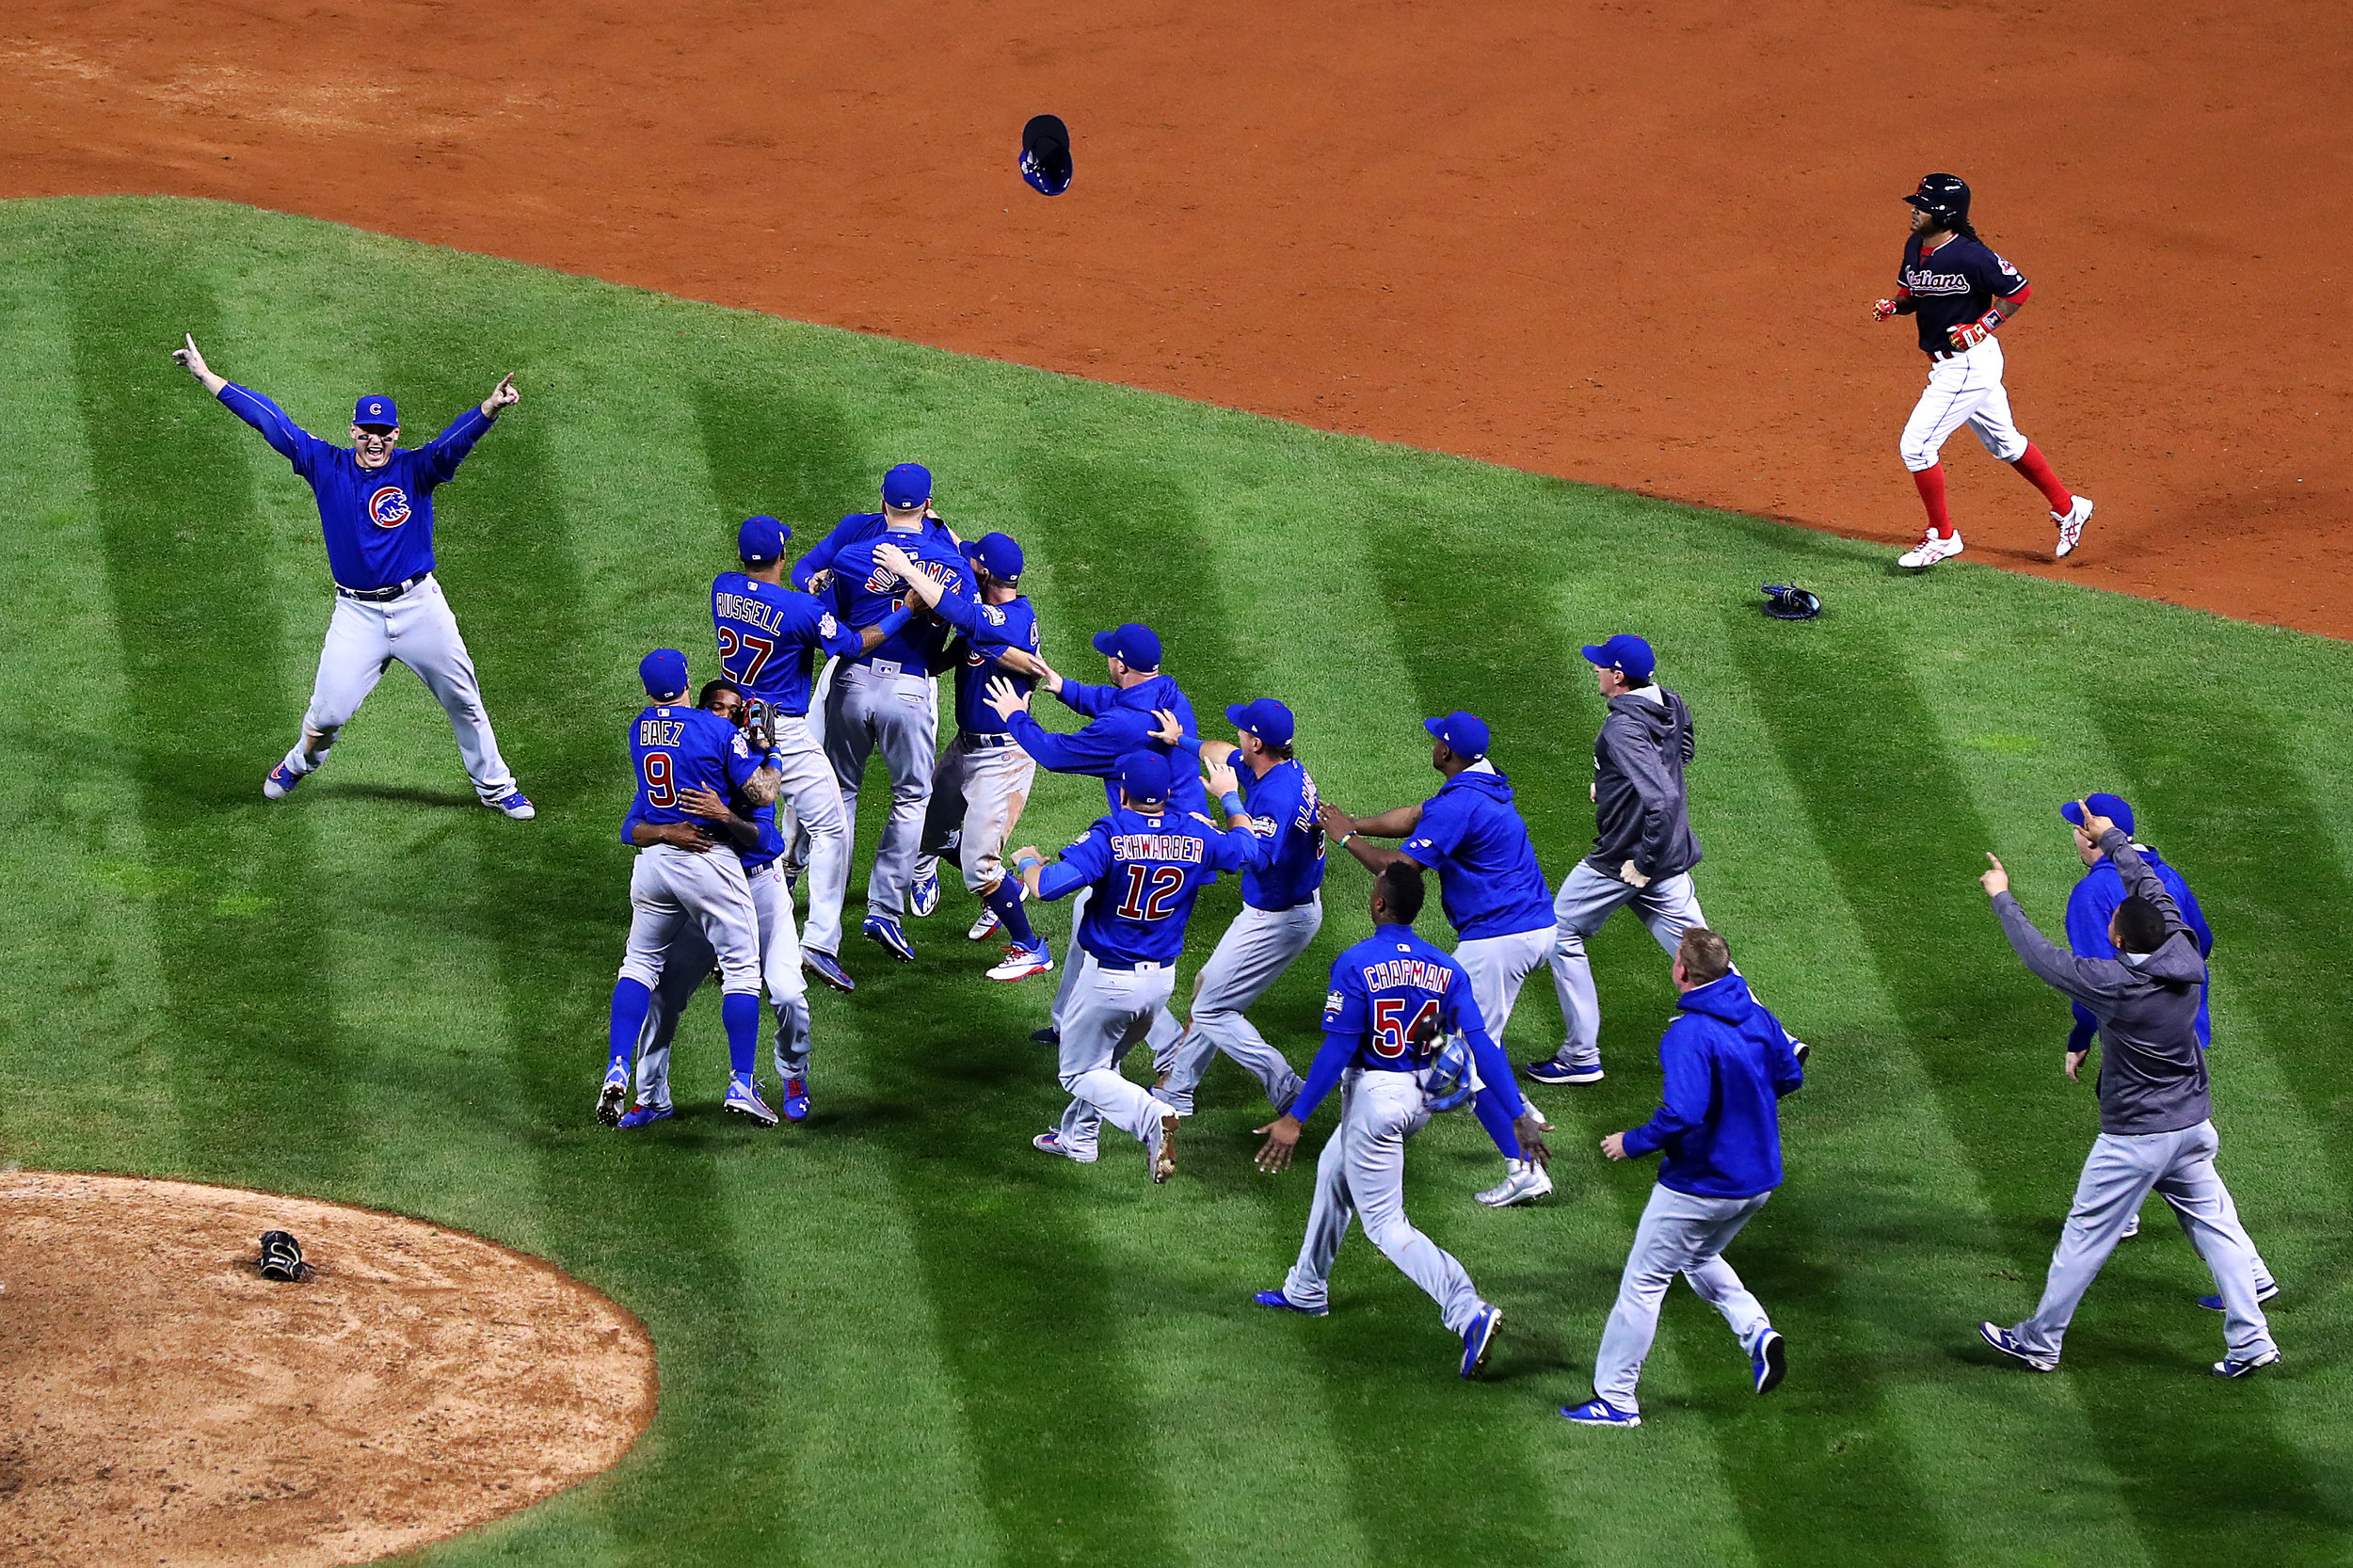 CLEVELAND, OH - NOVEMBER 02: The Chicago Cubs celebrate after defeating the Cleveland Indians 8-7 in Game Seven of the 2016 World Series at Progressive Field on November 2, 2016 in Cleveland, Ohio. The Cubs win their first World Series in 108 years. (Photo by Tim Bradbury/Getty Images)